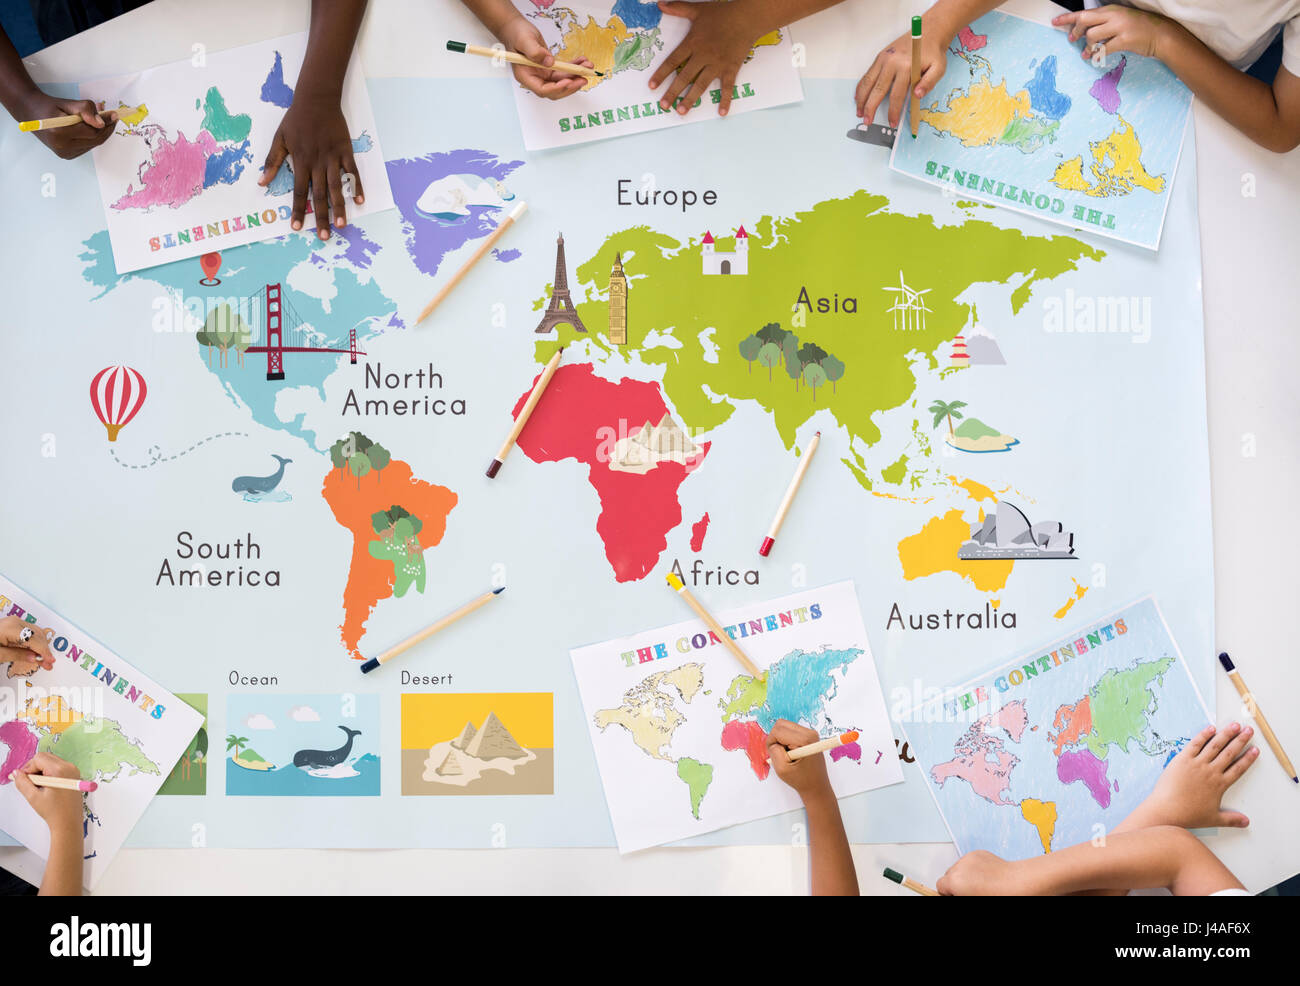 Kids learning world map with continents countries ocean geography kids learning world map with continents countries ocean geography gumiabroncs